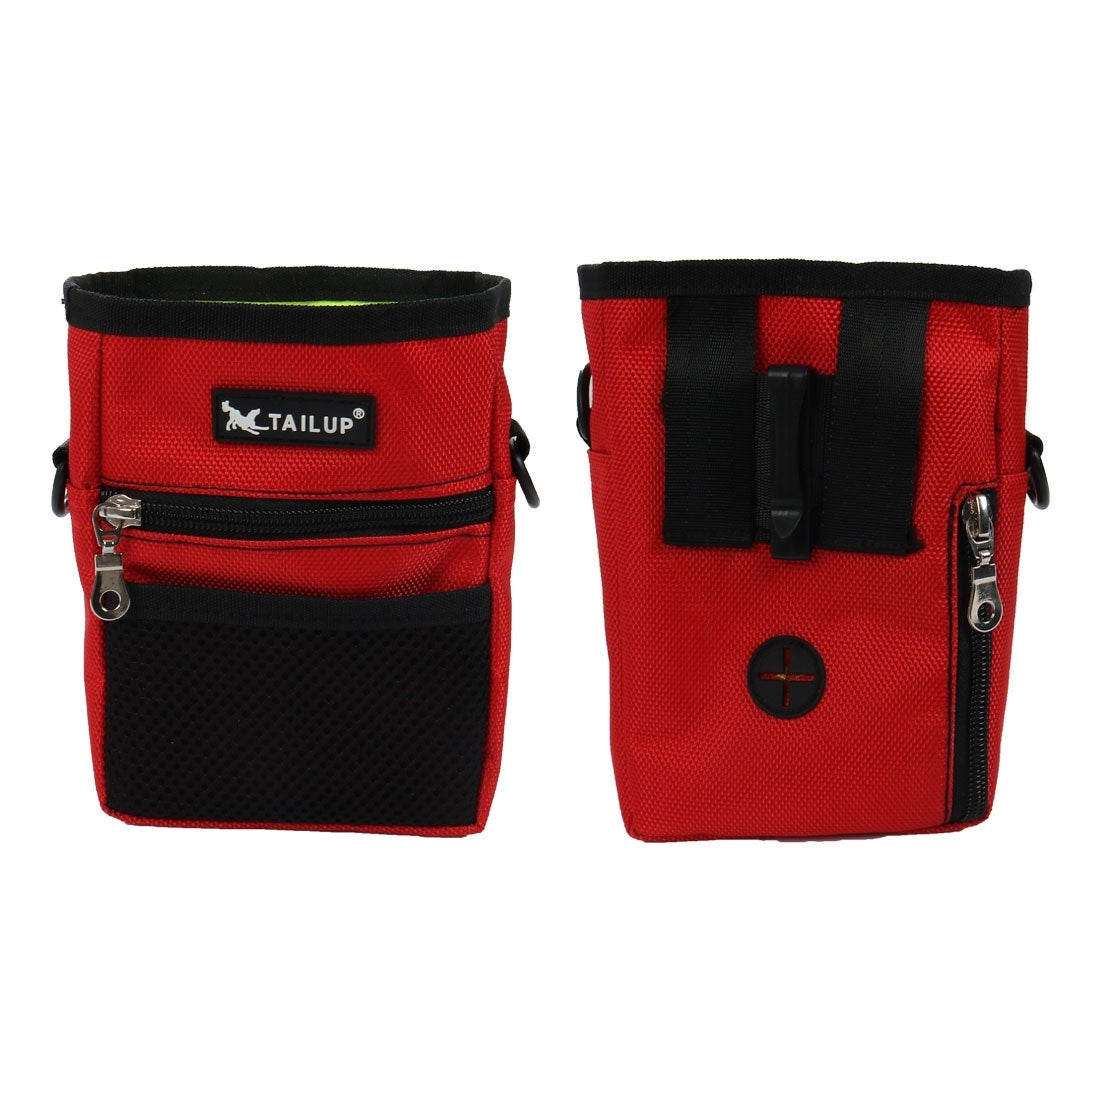 uxcell TAILUP Authorized Dog Treat Pouch Training Waist Bag Carry Pet Toys Dog Training Accessory Front Mesh Pocket Easily Carries Brown